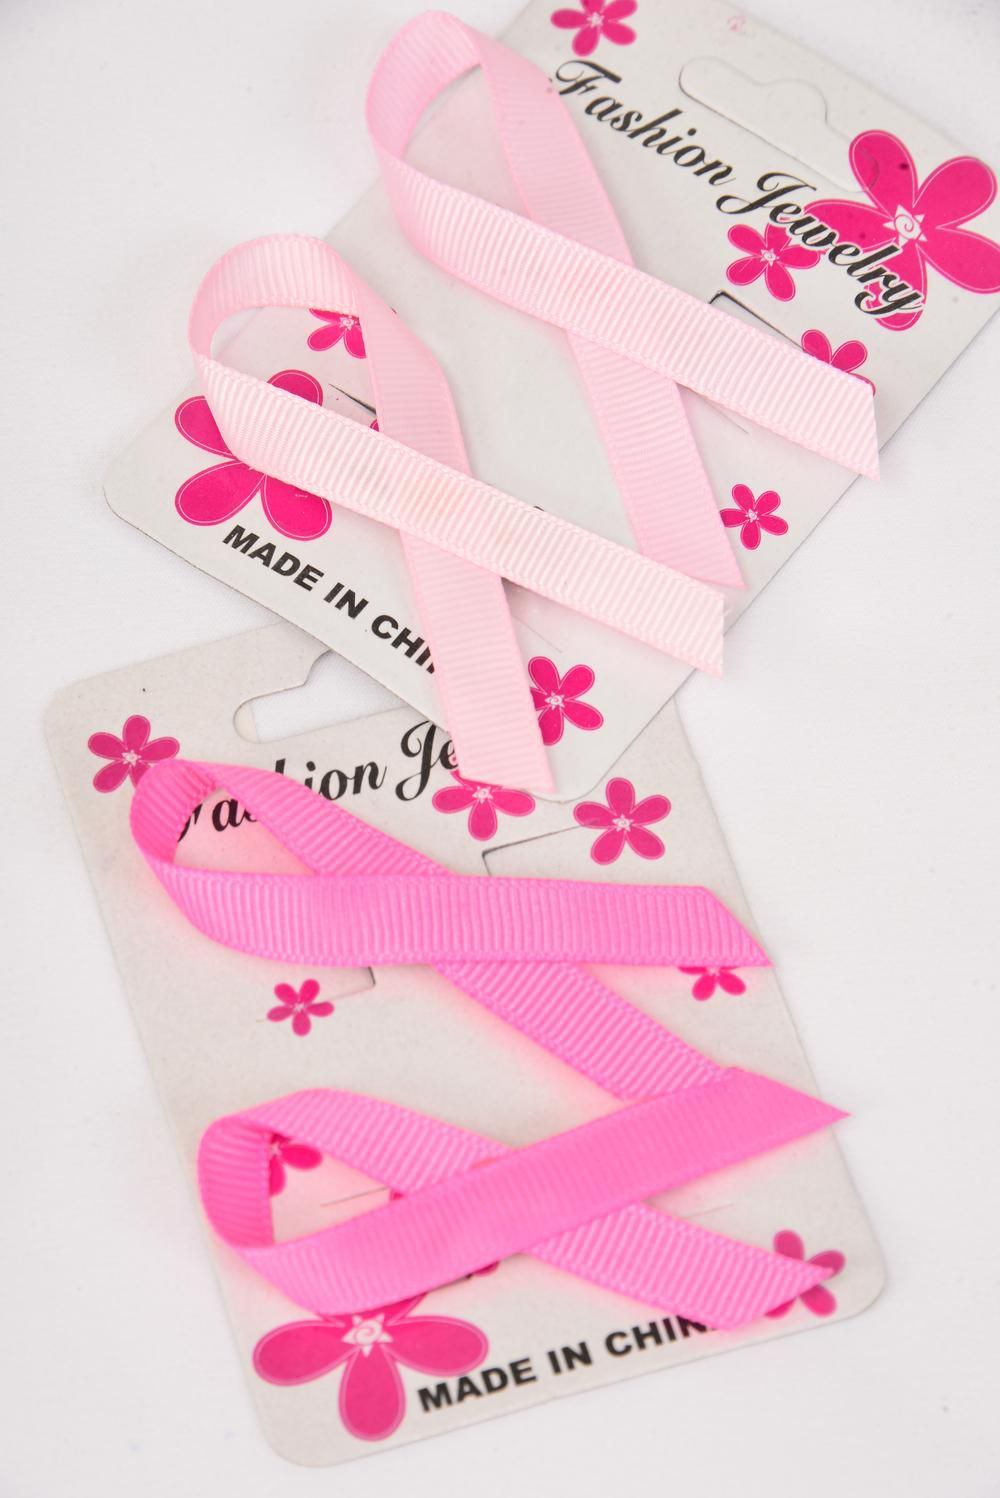 "Brooch Pink Ribbons Grosgrain Fabric 24 pecs/DZ Size-2.5""x 1.25"" Wide,6 Hot Pink,6 Baby Pink Mix,Display Card & UPC Code,Clear Box,2 pecs per Card,12 Card=Dozen"